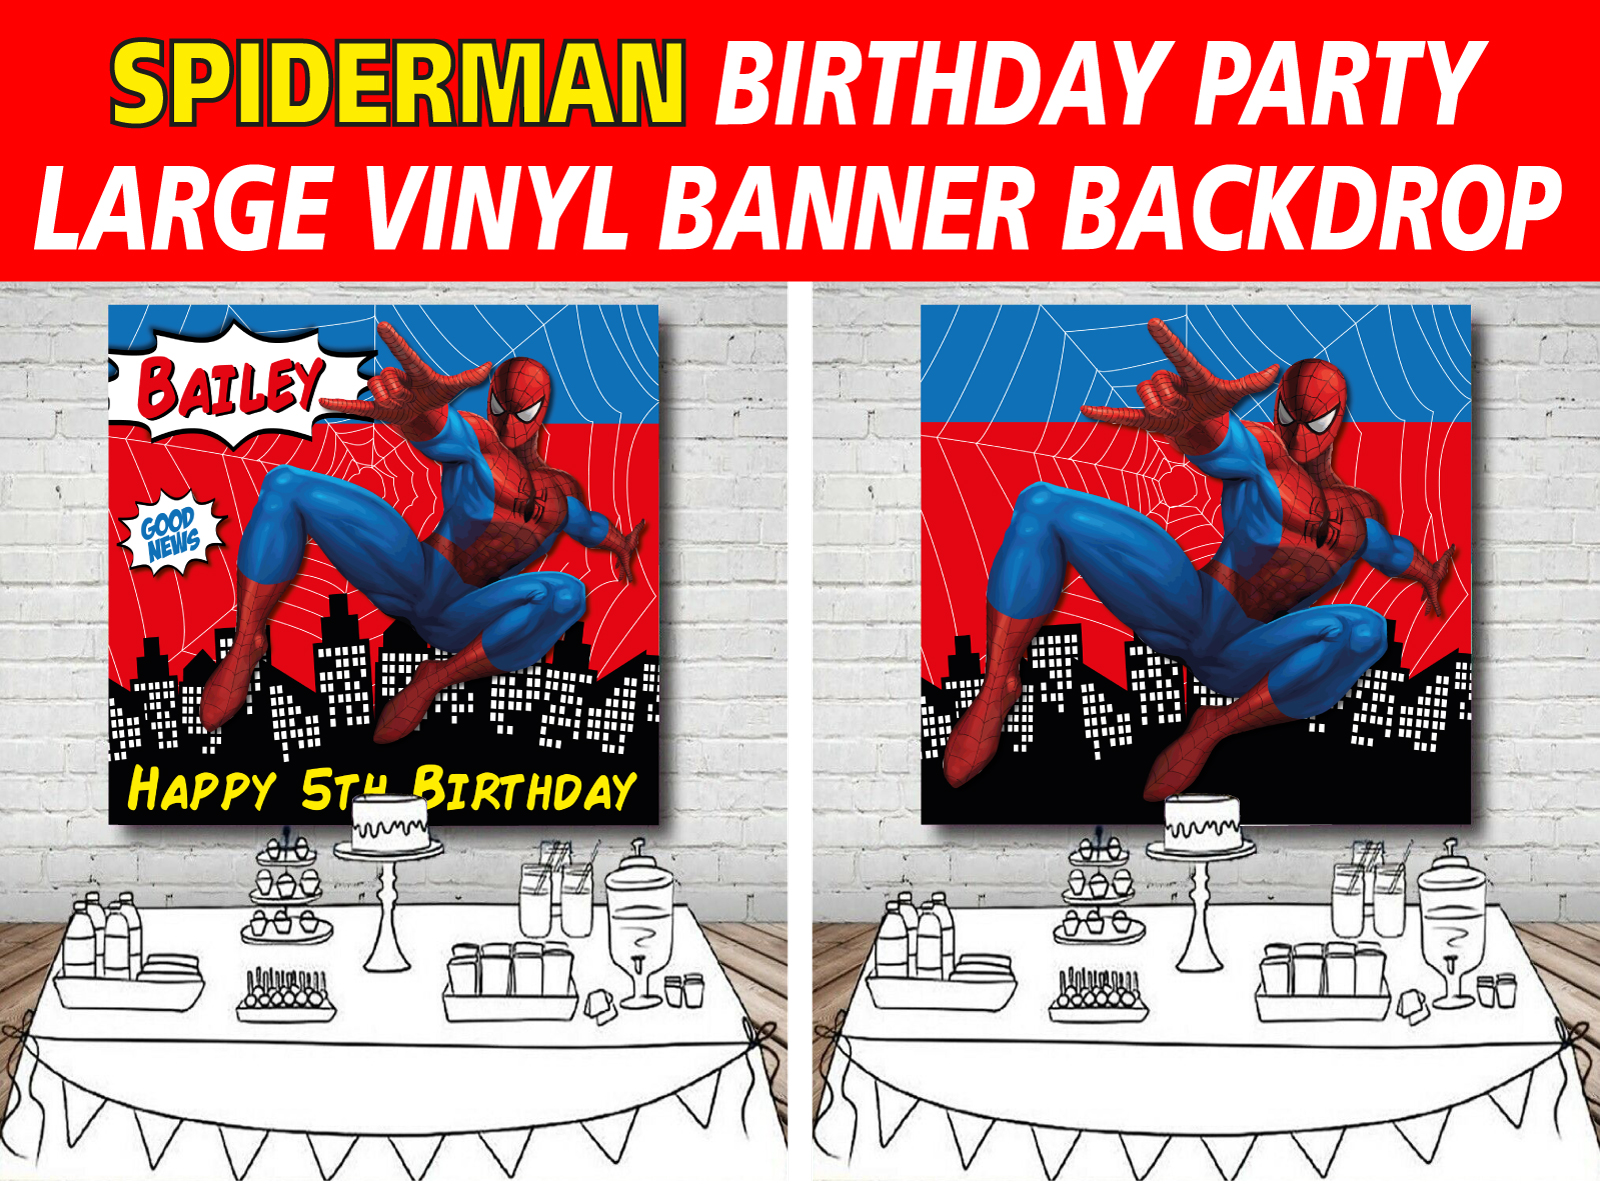 spiderman-party-backdrop-banner-ebay.jpg